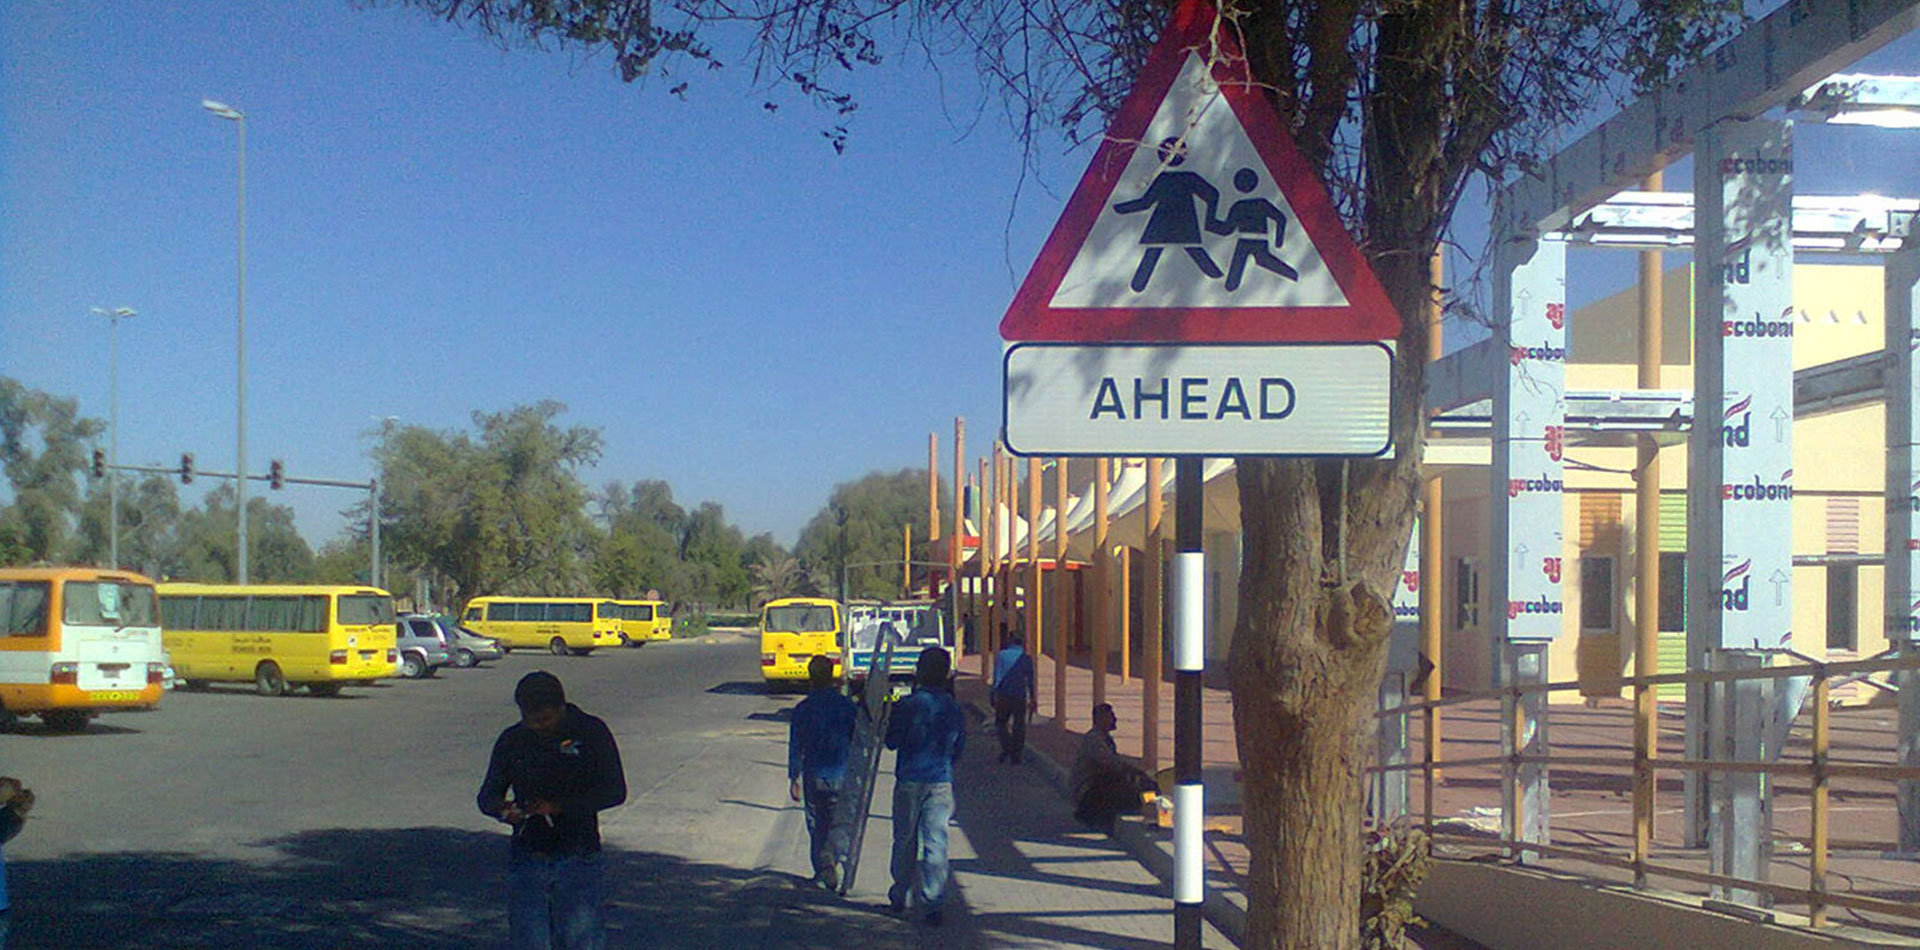 Warning Signage showing school ahead